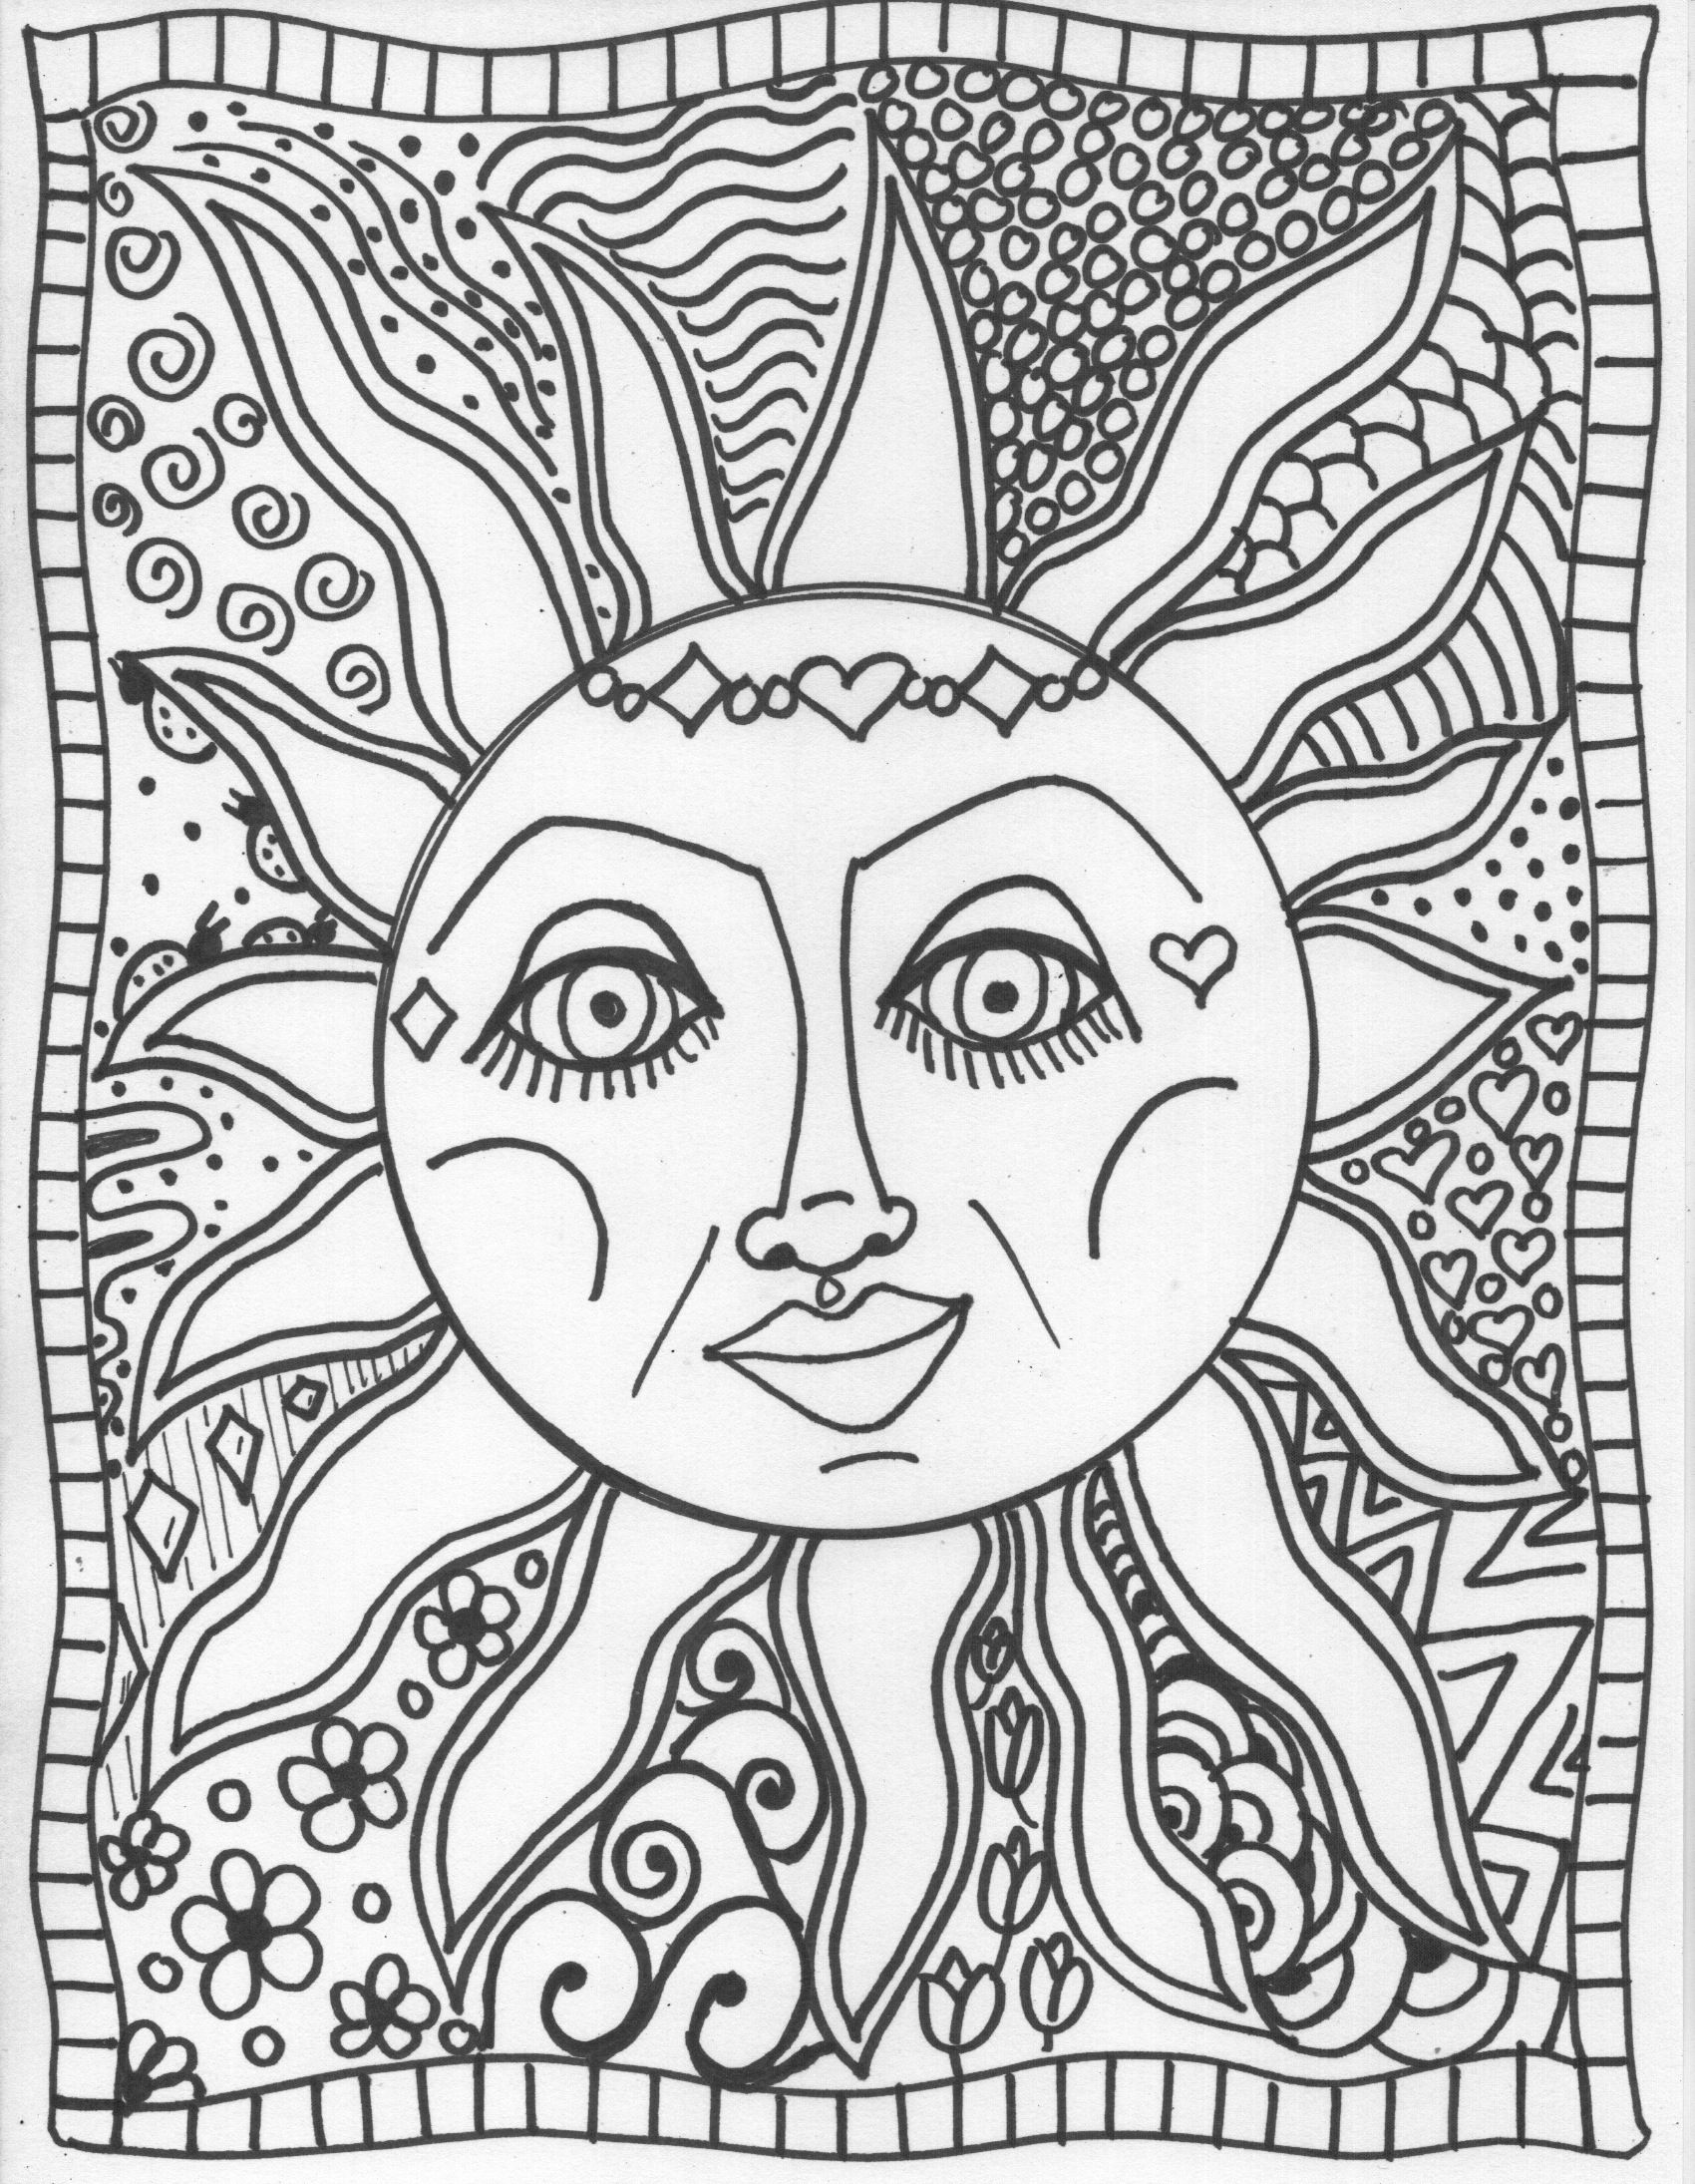 Coloring Pages Trippy Color Pages trippy coloring pages flowers drawing by abby keller zen pesquisa do google